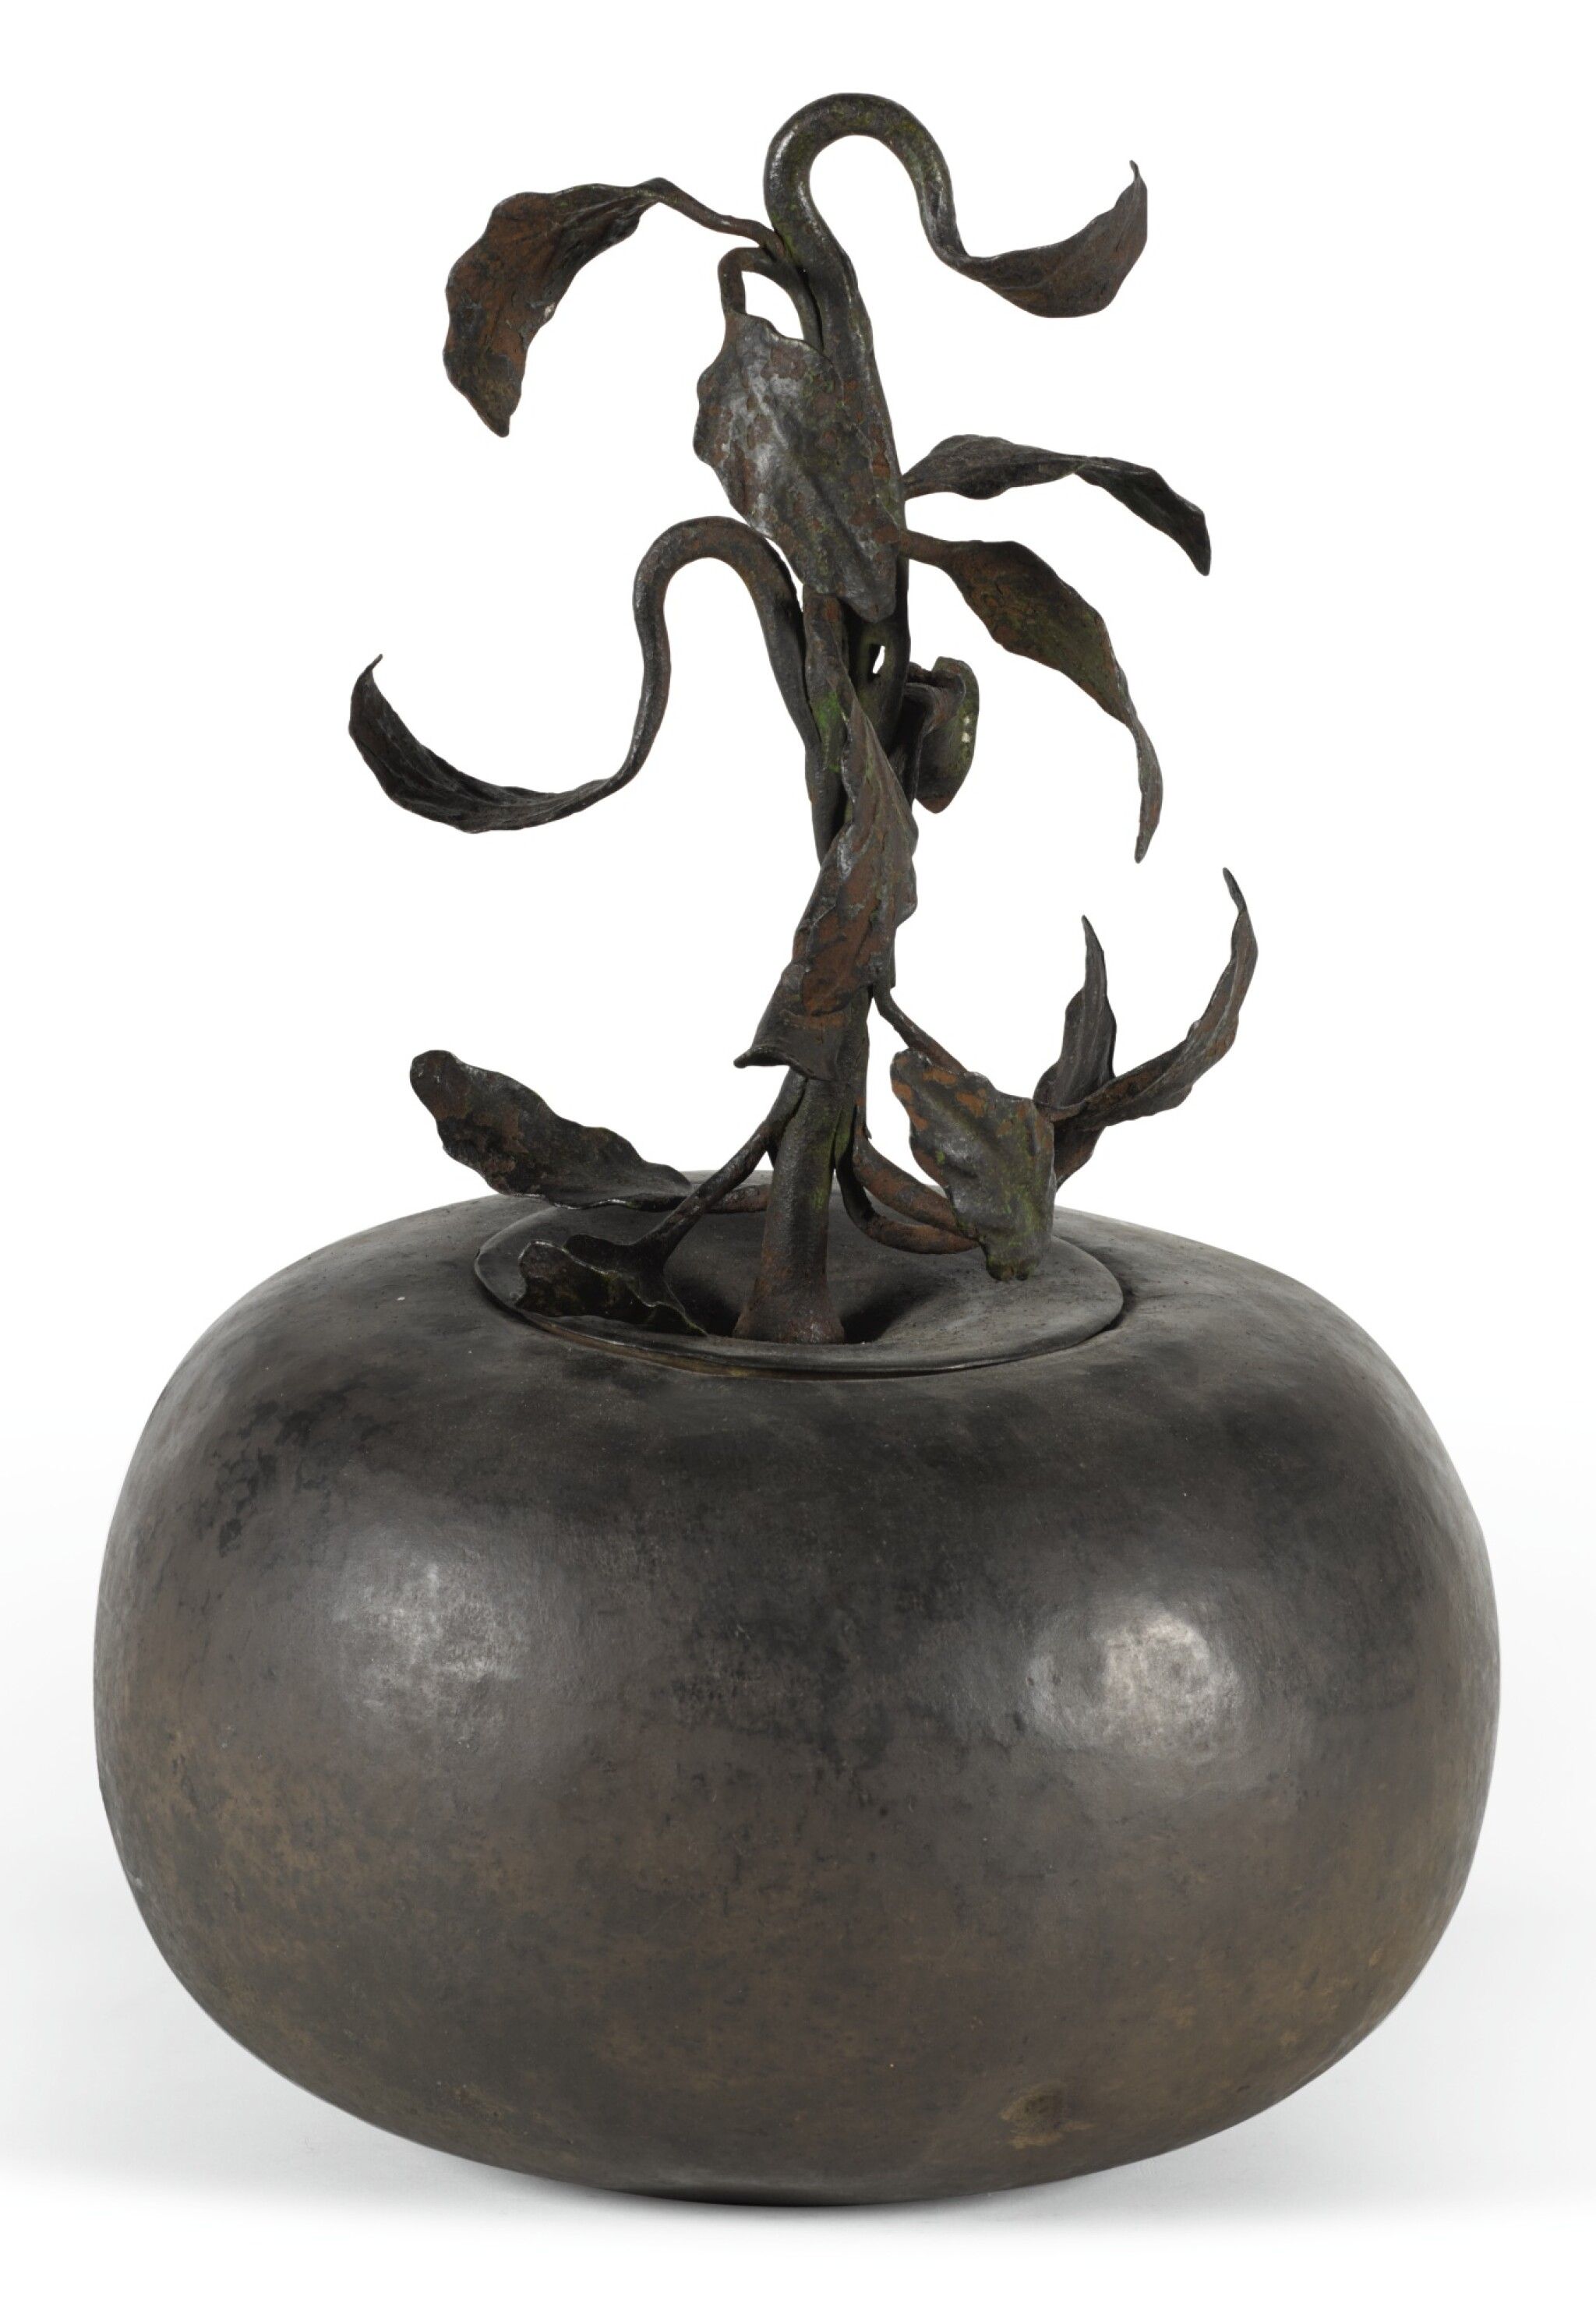 View 1 of Lot 1. PROBABLY SWISS, 18TH CENTURY | Sign in the Form of an Apple.